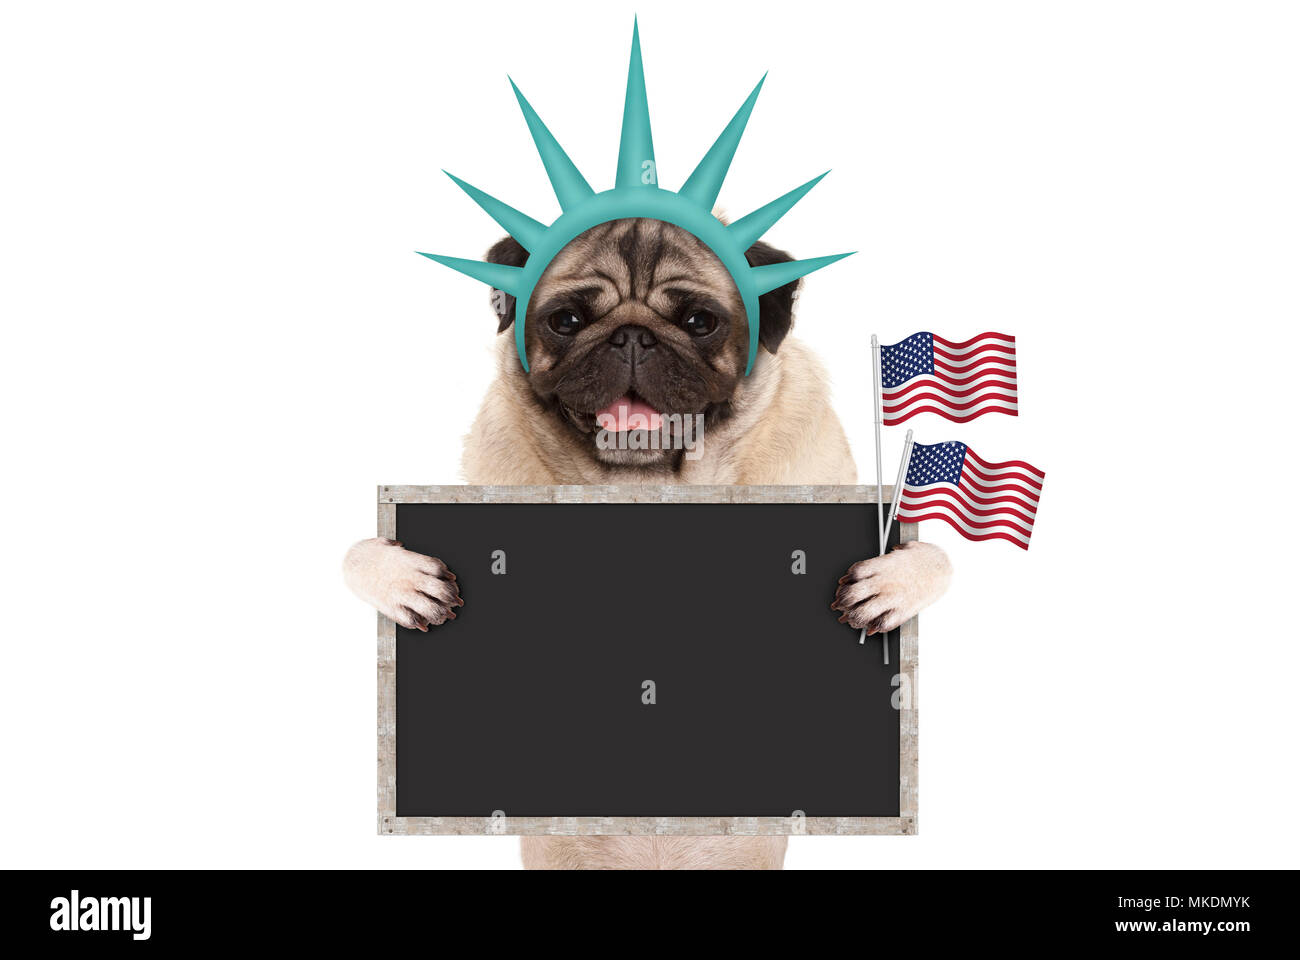 smiling pug puppy dog holding up American flag and blank blackboard sign, wearing lady Liberty crown, isolated on white - Stock Image